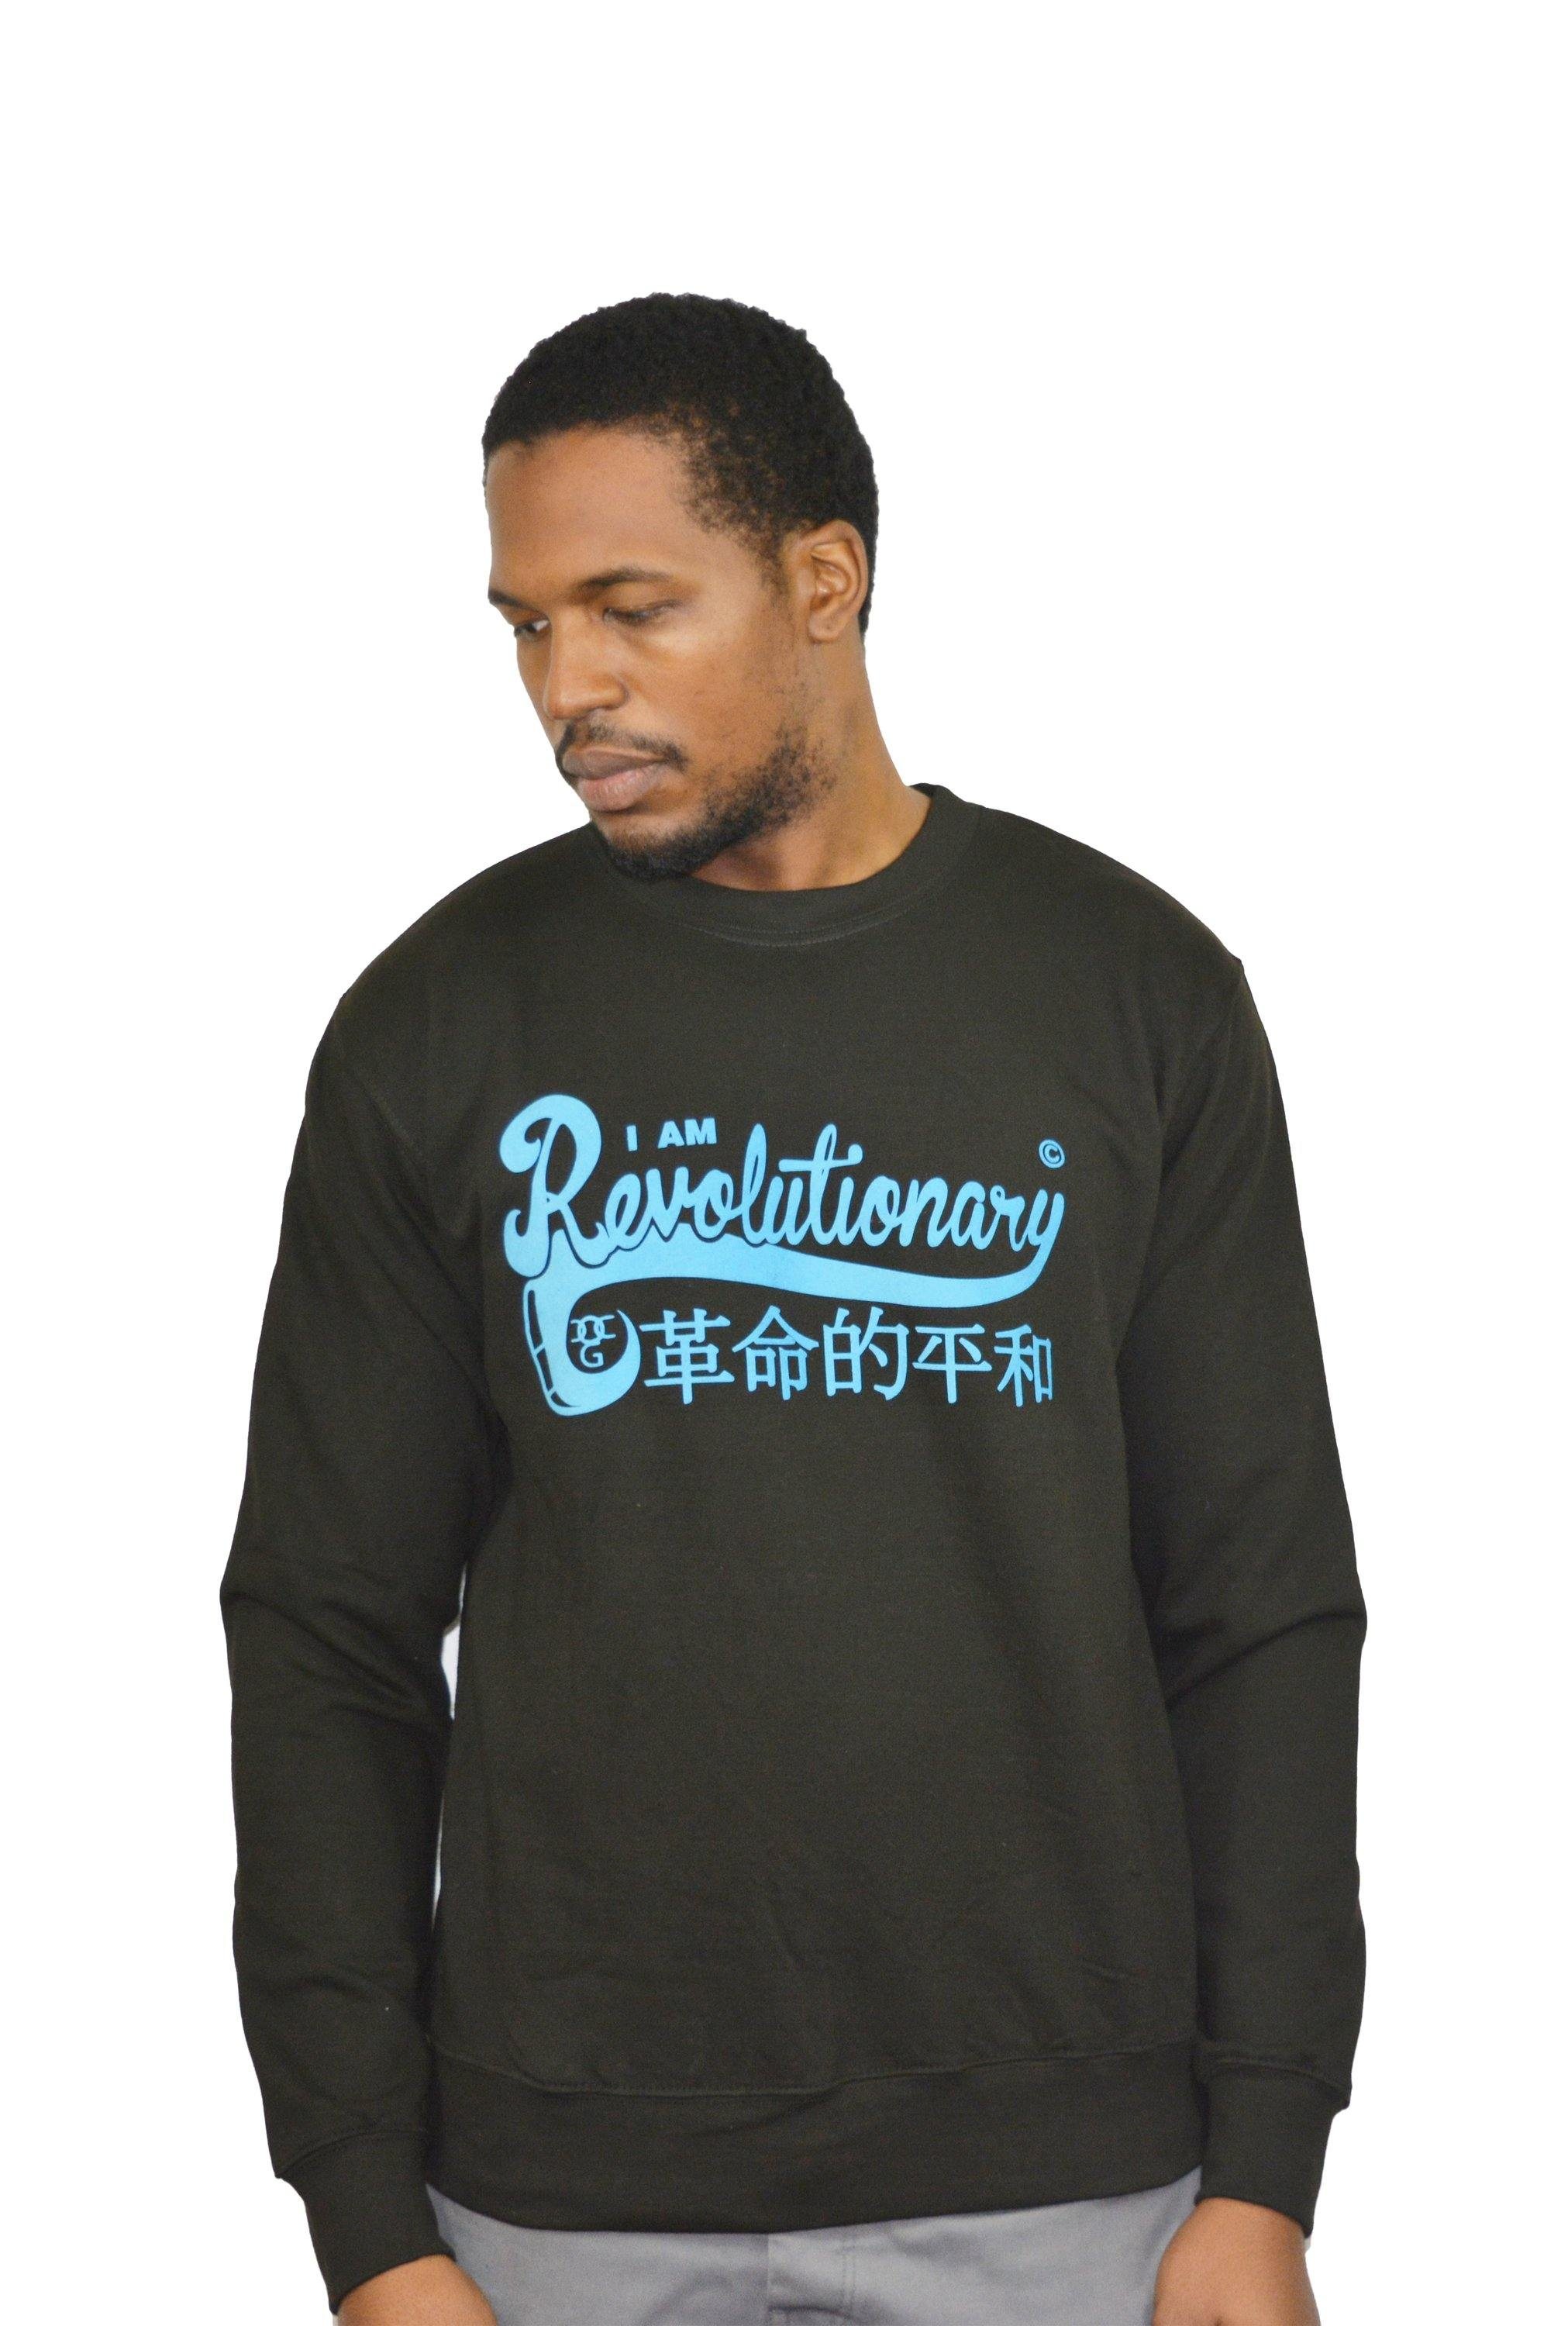 Mens Black / Blue I Am Revolutionary Sweatshirt - DadiTude